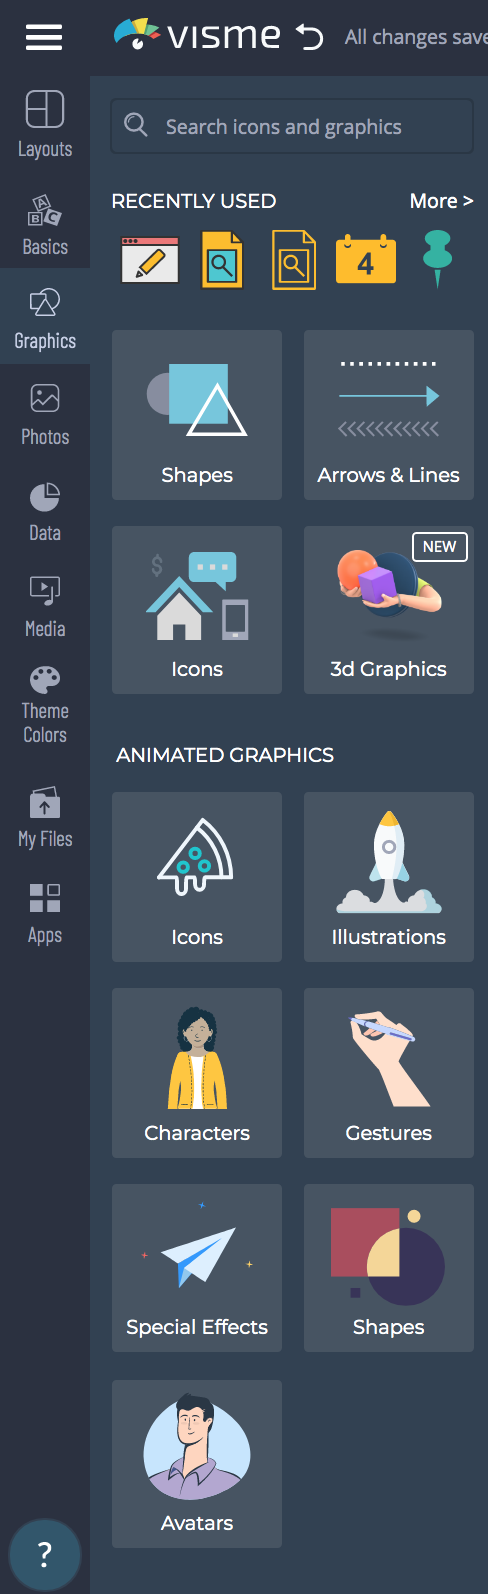 The animated graphics options available in Visme.